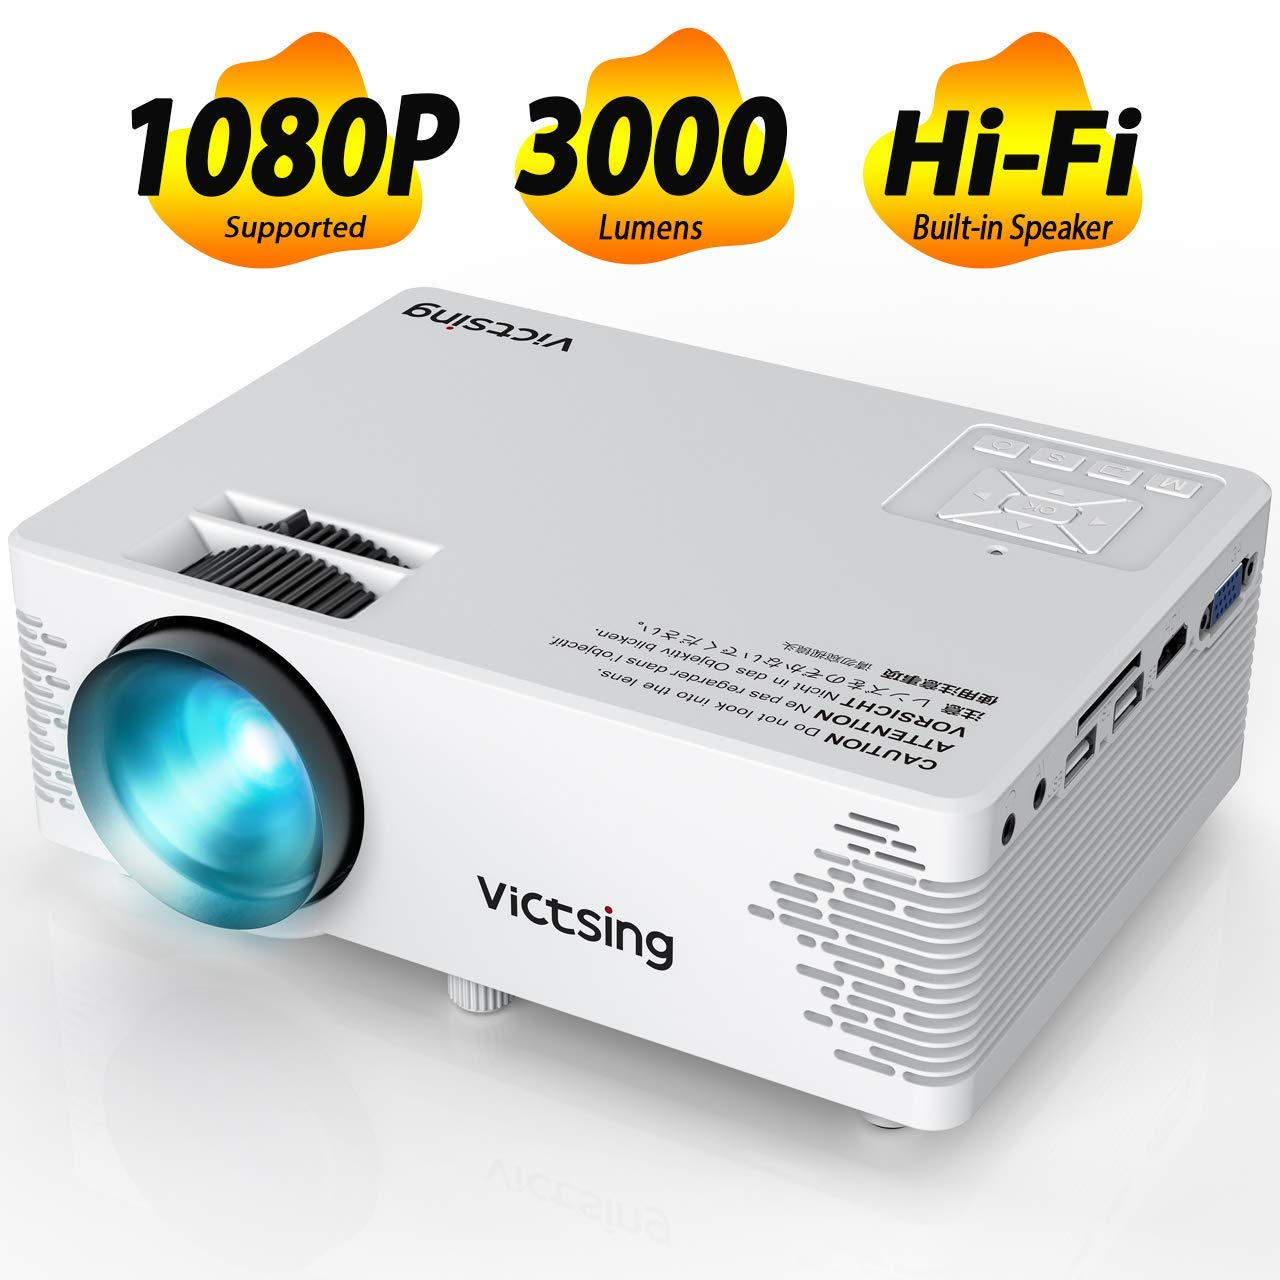 VicTsing Mini Projector, 2019 Upgraded Video Projector with Hifi Speaker, 3000 Lux; Full HD 1080P Supported Portable Projector with 170'' Display, Compatible with TV Stick, Laptop, HDMI/VGA/SD/AV